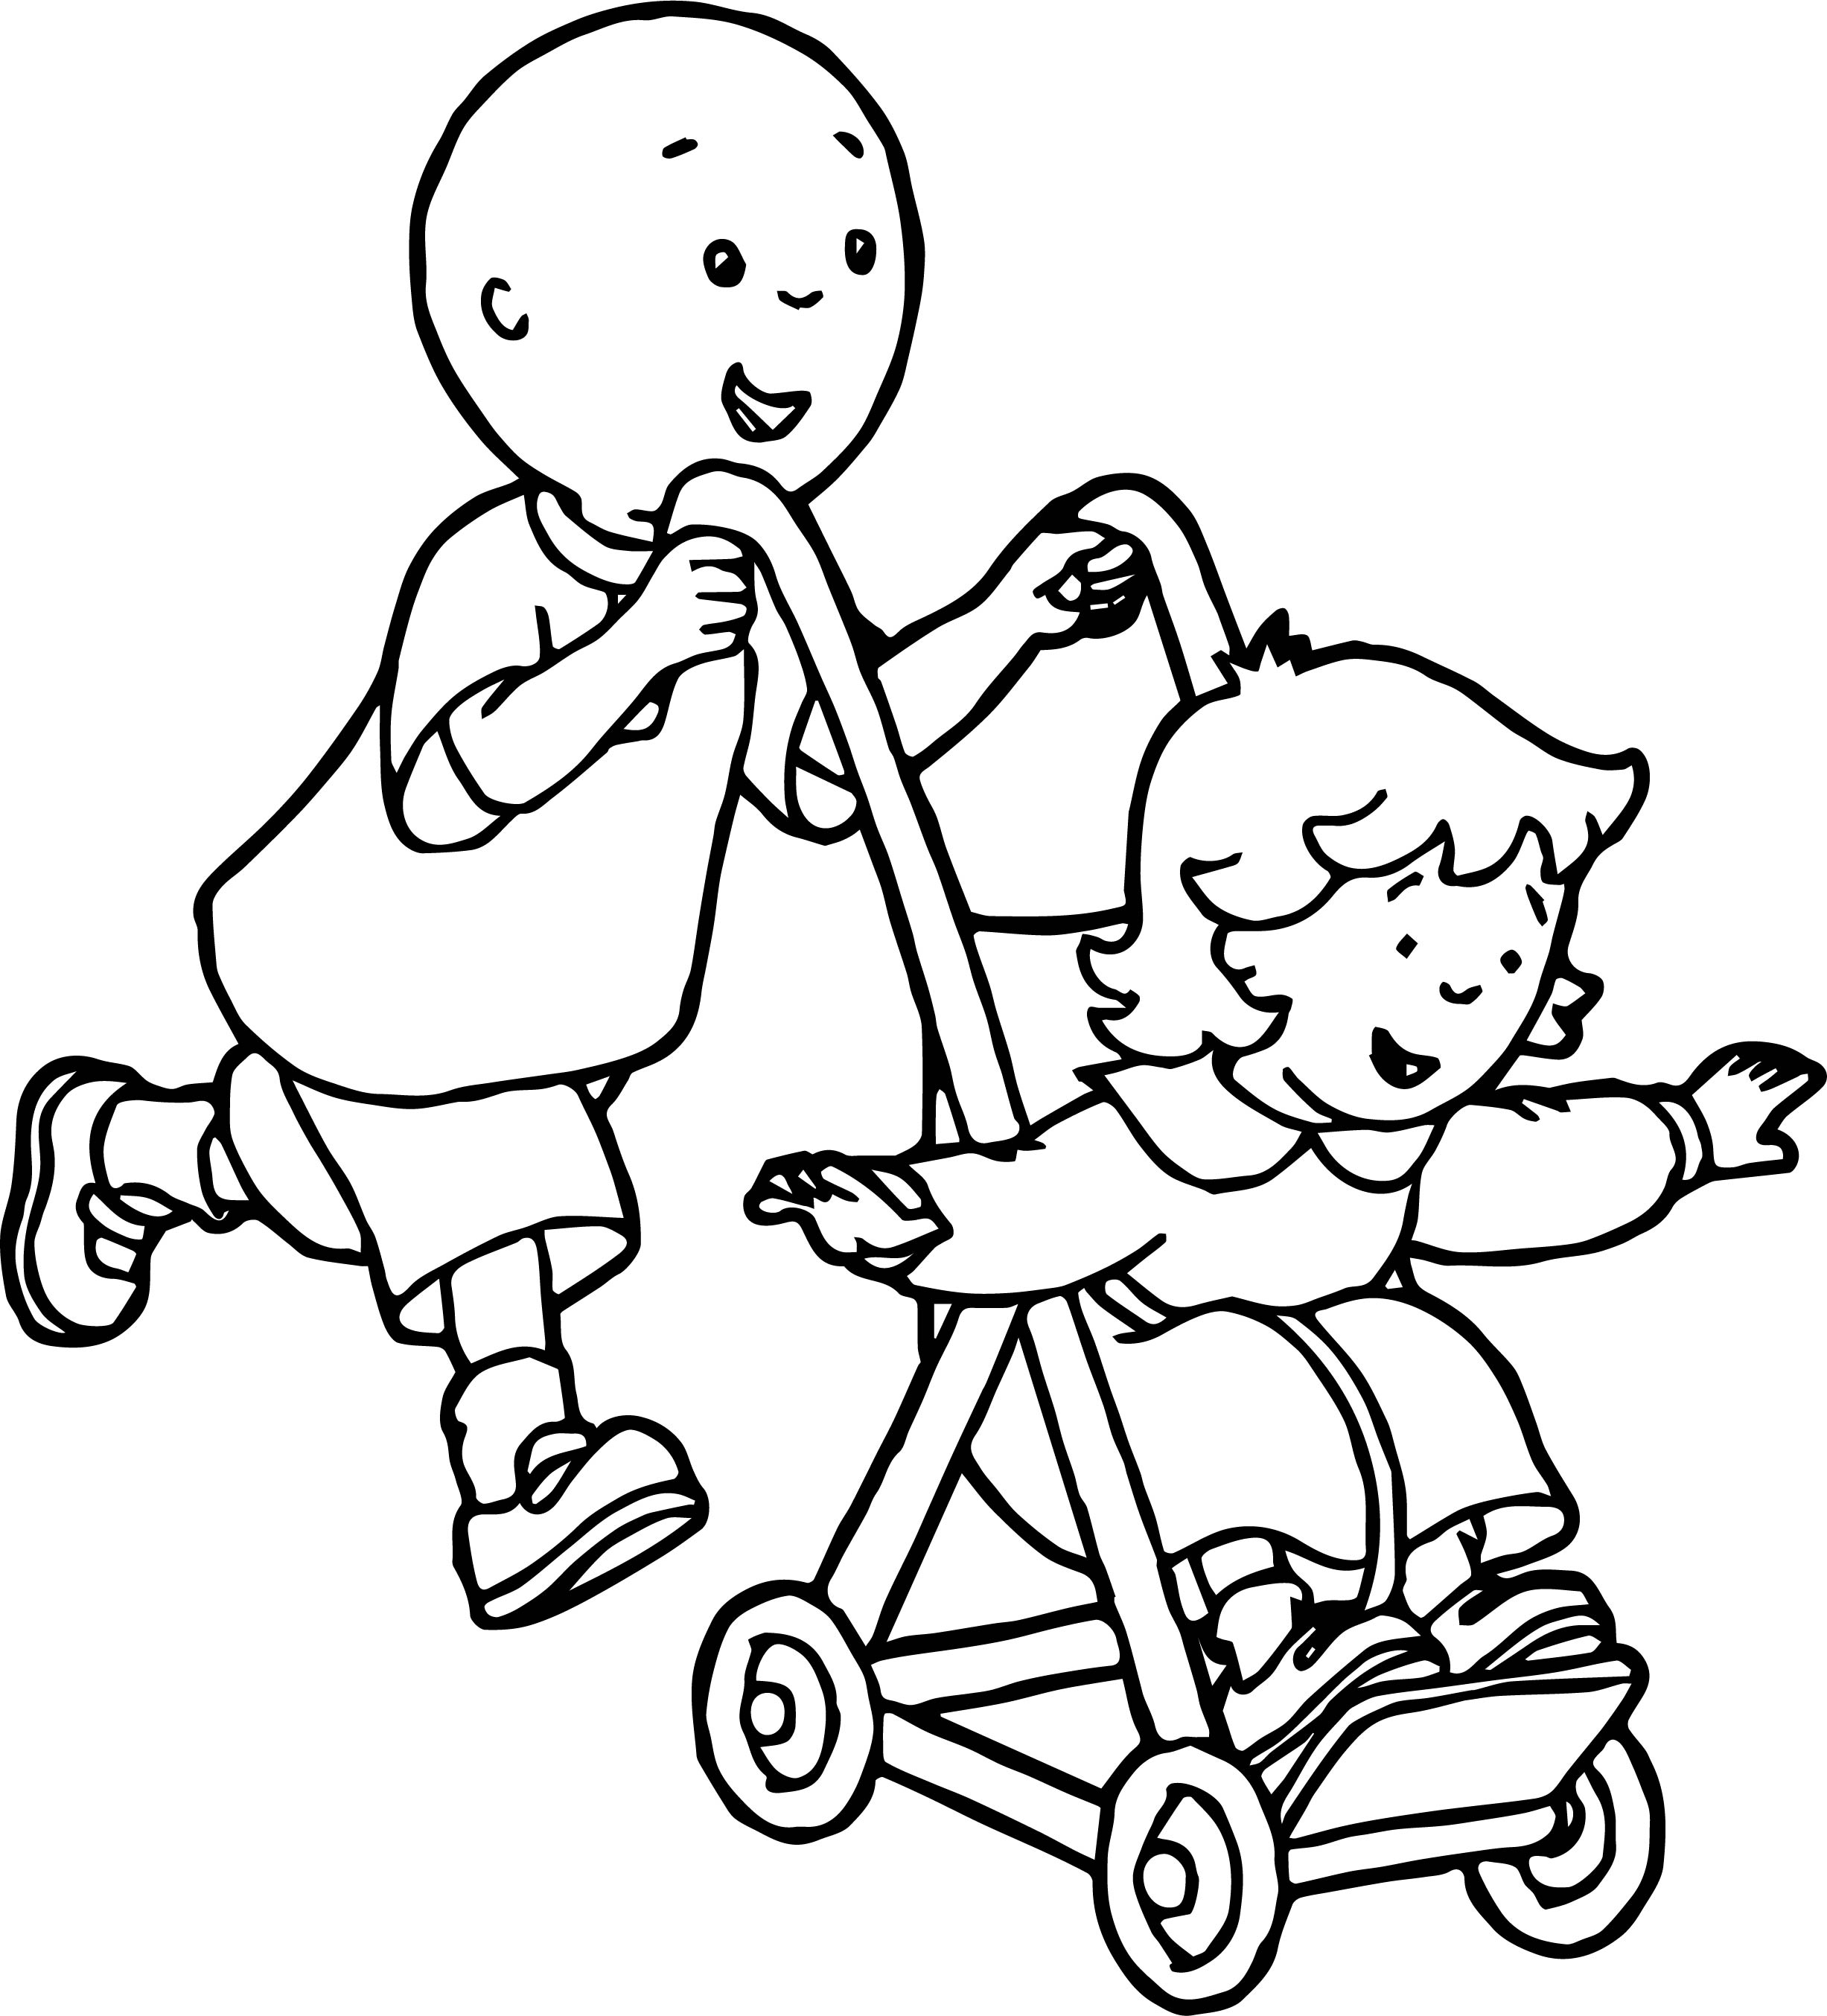 Caillou Pushing Rosie In Stroller Caillou Coloring Page